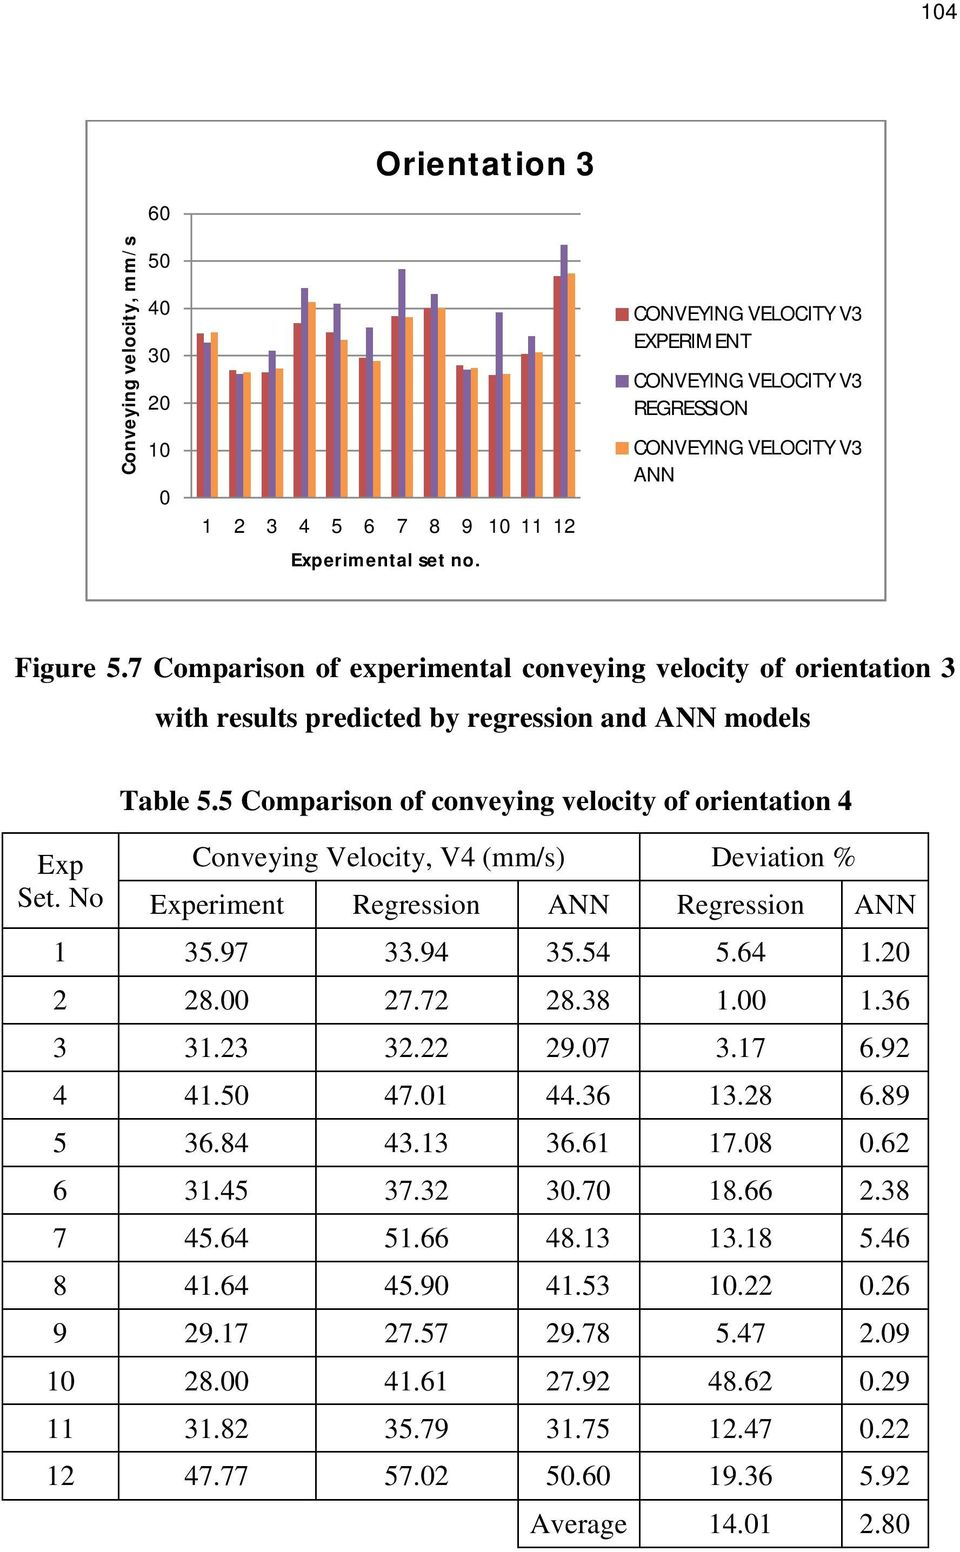 5 Comparison of conveying velocity of orientation 4 Conveying Velocity, V4 (mm/s) Deviation % Experiment Regression ANN Regression ANN 1 35.97 33.94 35.54 5.64 1.20 2 28.00 27.72 28.38 1.00 1.36 3 31.